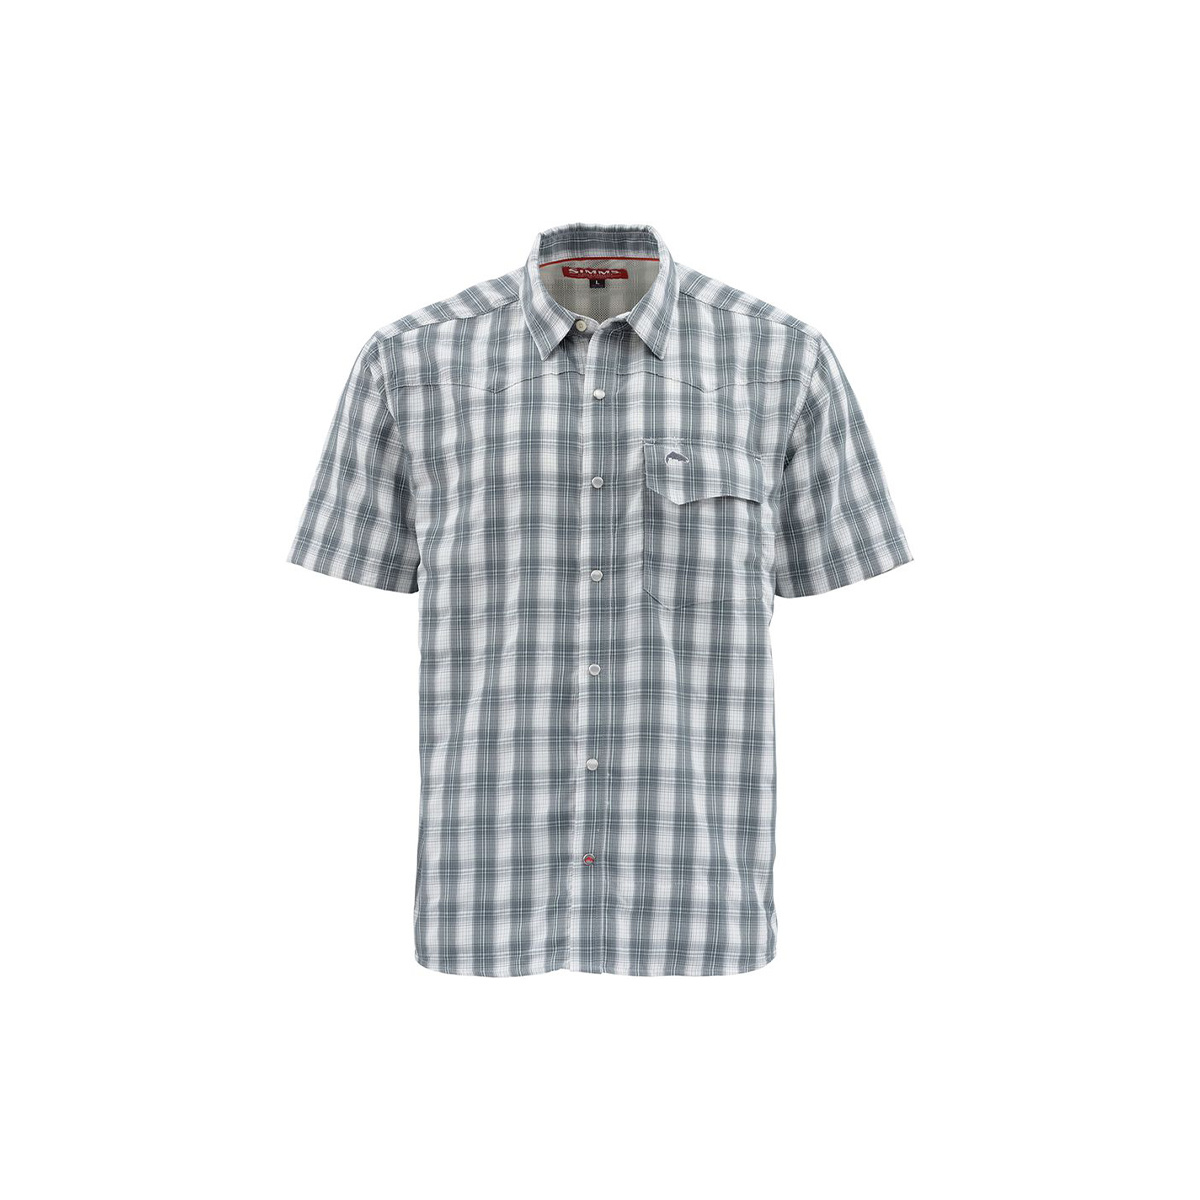 Simms Clothing Big Sky Short Sleeve Shirt